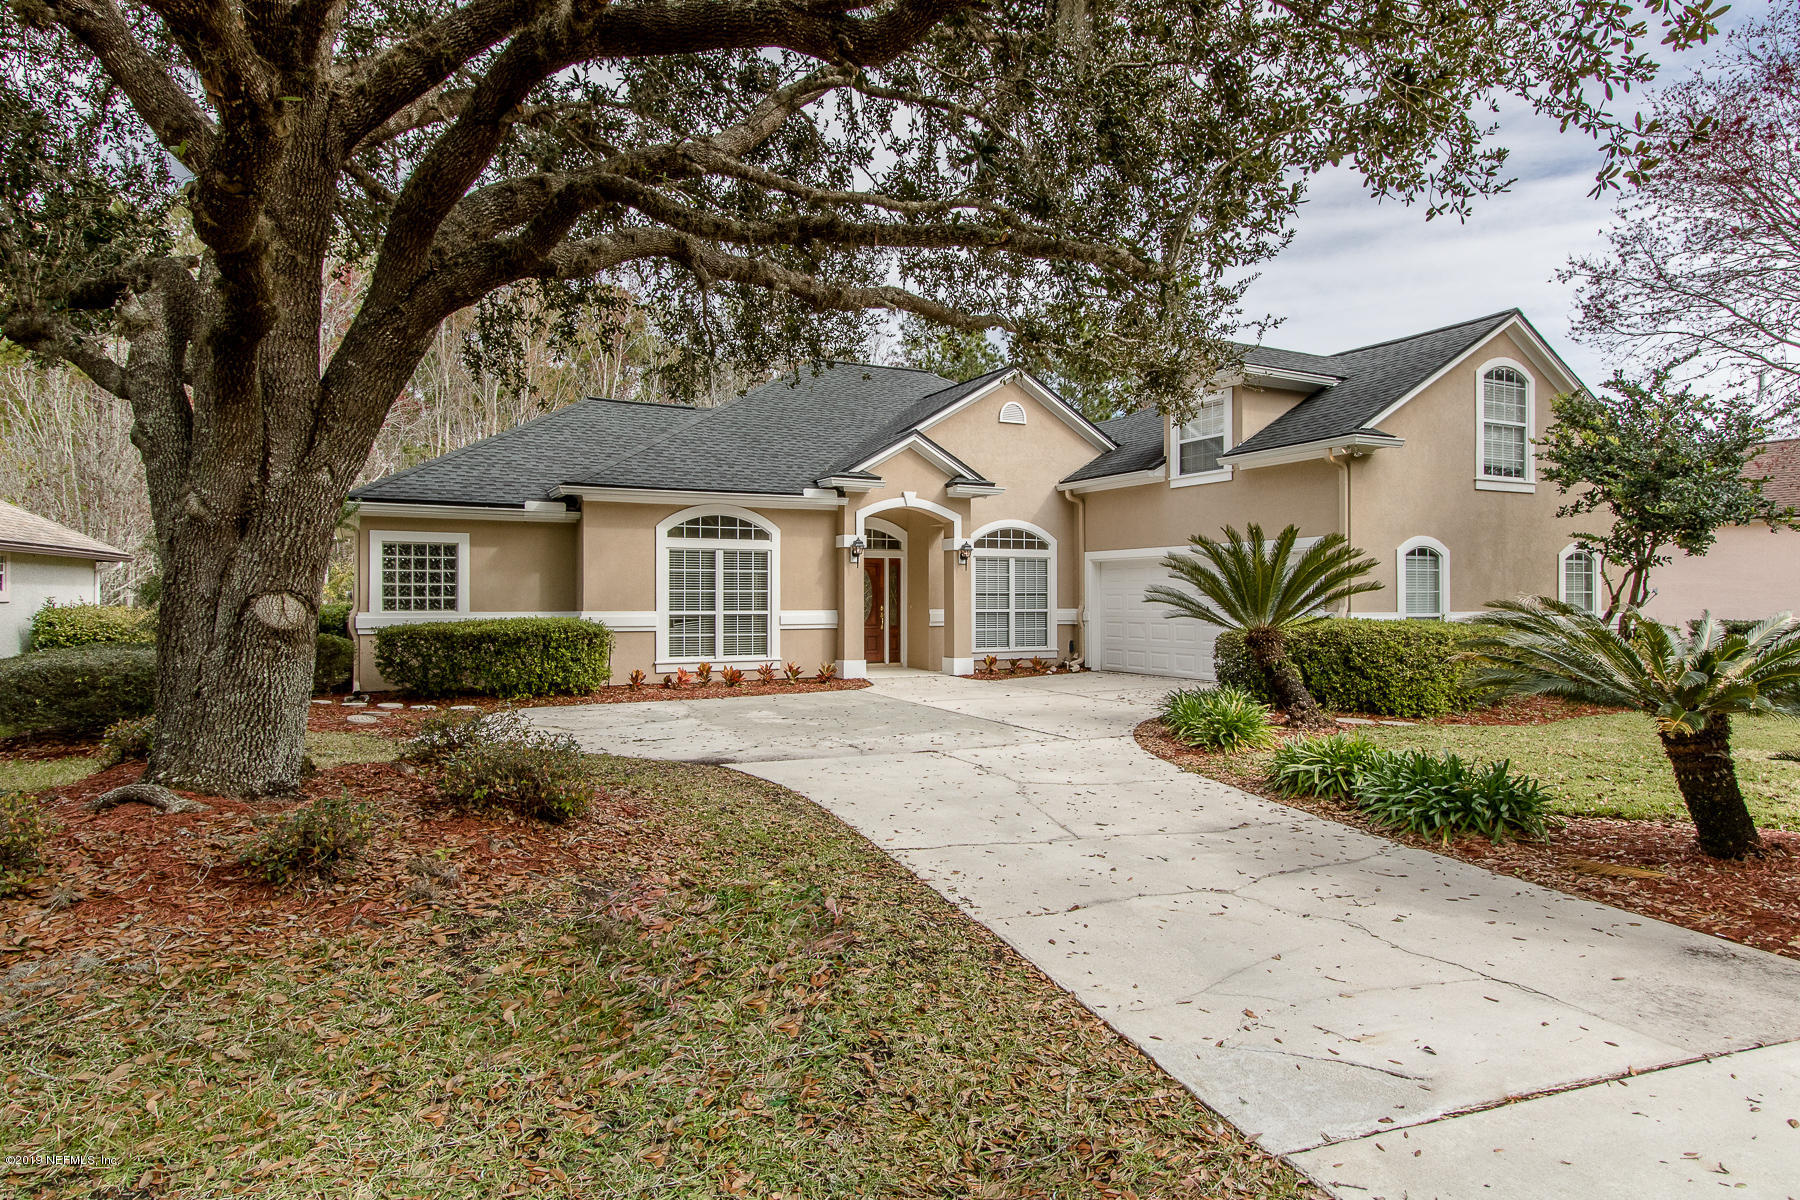 1636 MISTY LAKE, FLEMING ISLAND, FLORIDA 32003, 5 Bedrooms Bedrooms, ,4 BathroomsBathrooms,Residential - single family,For sale,MISTY LAKE,977364